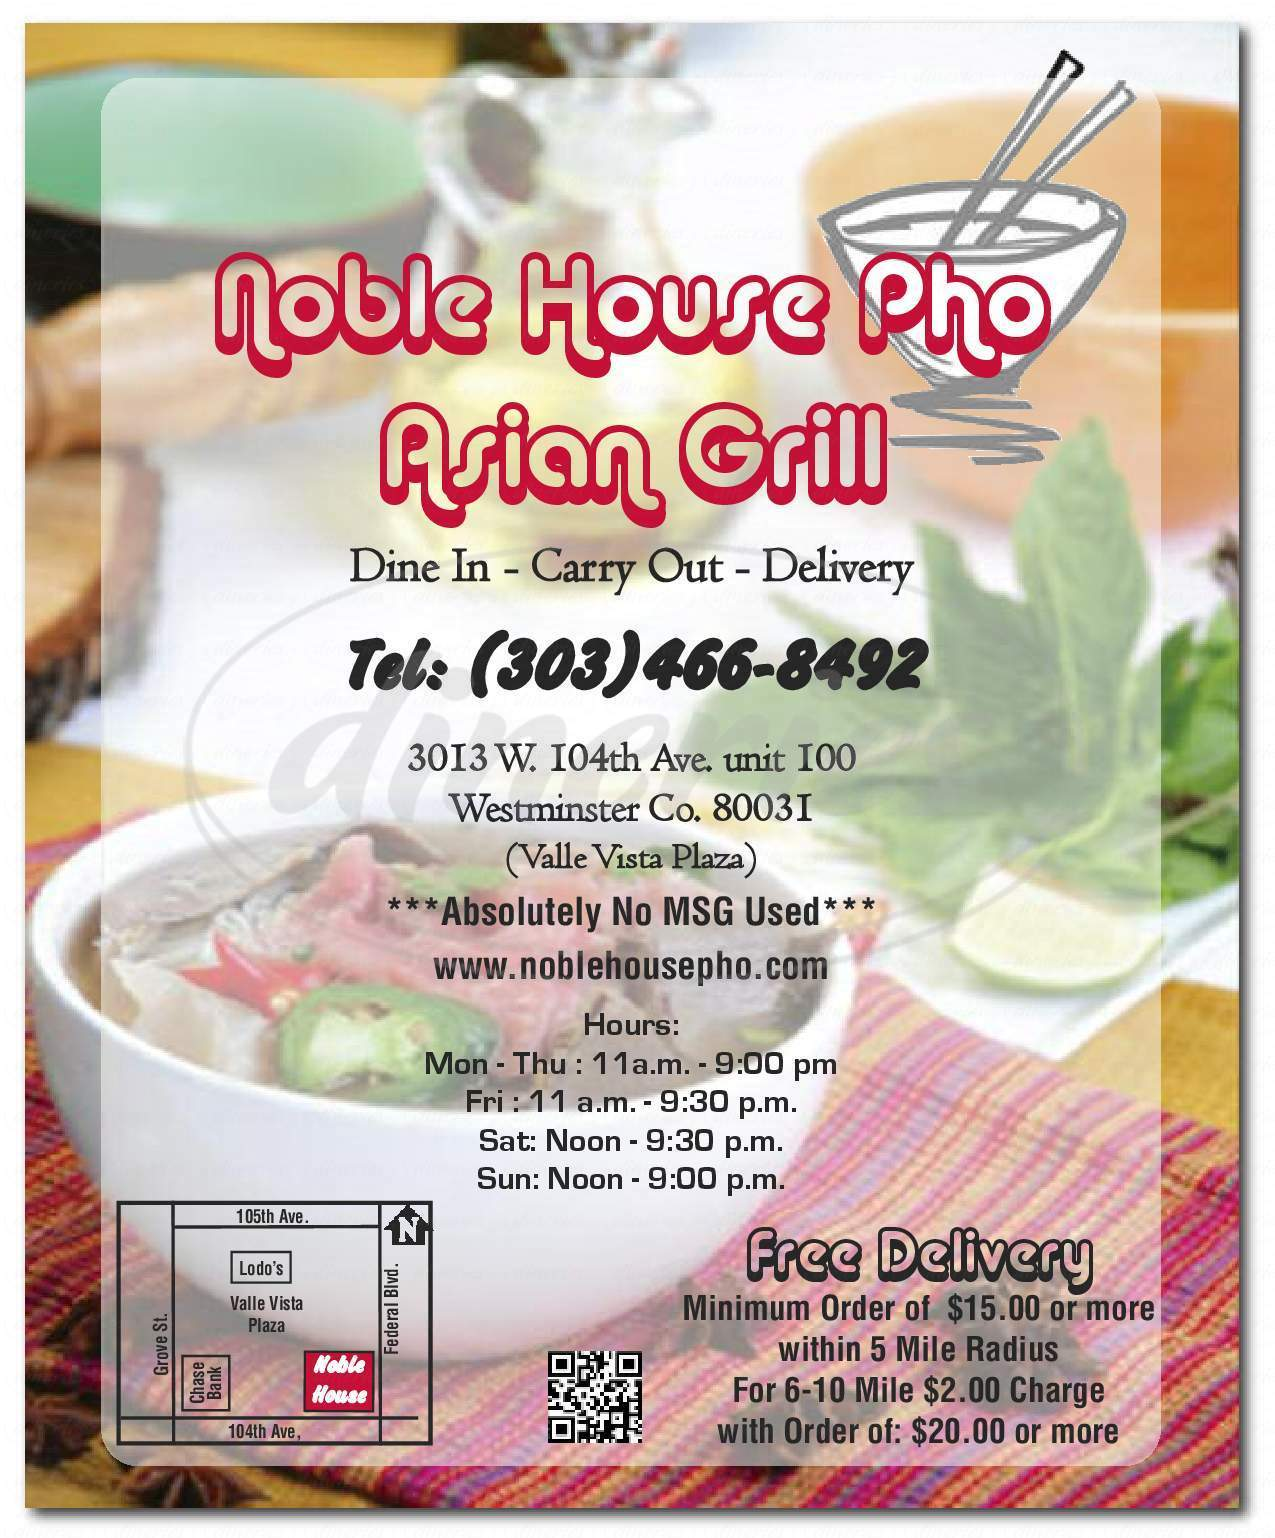 menu for Noble House Pho Asian Grill